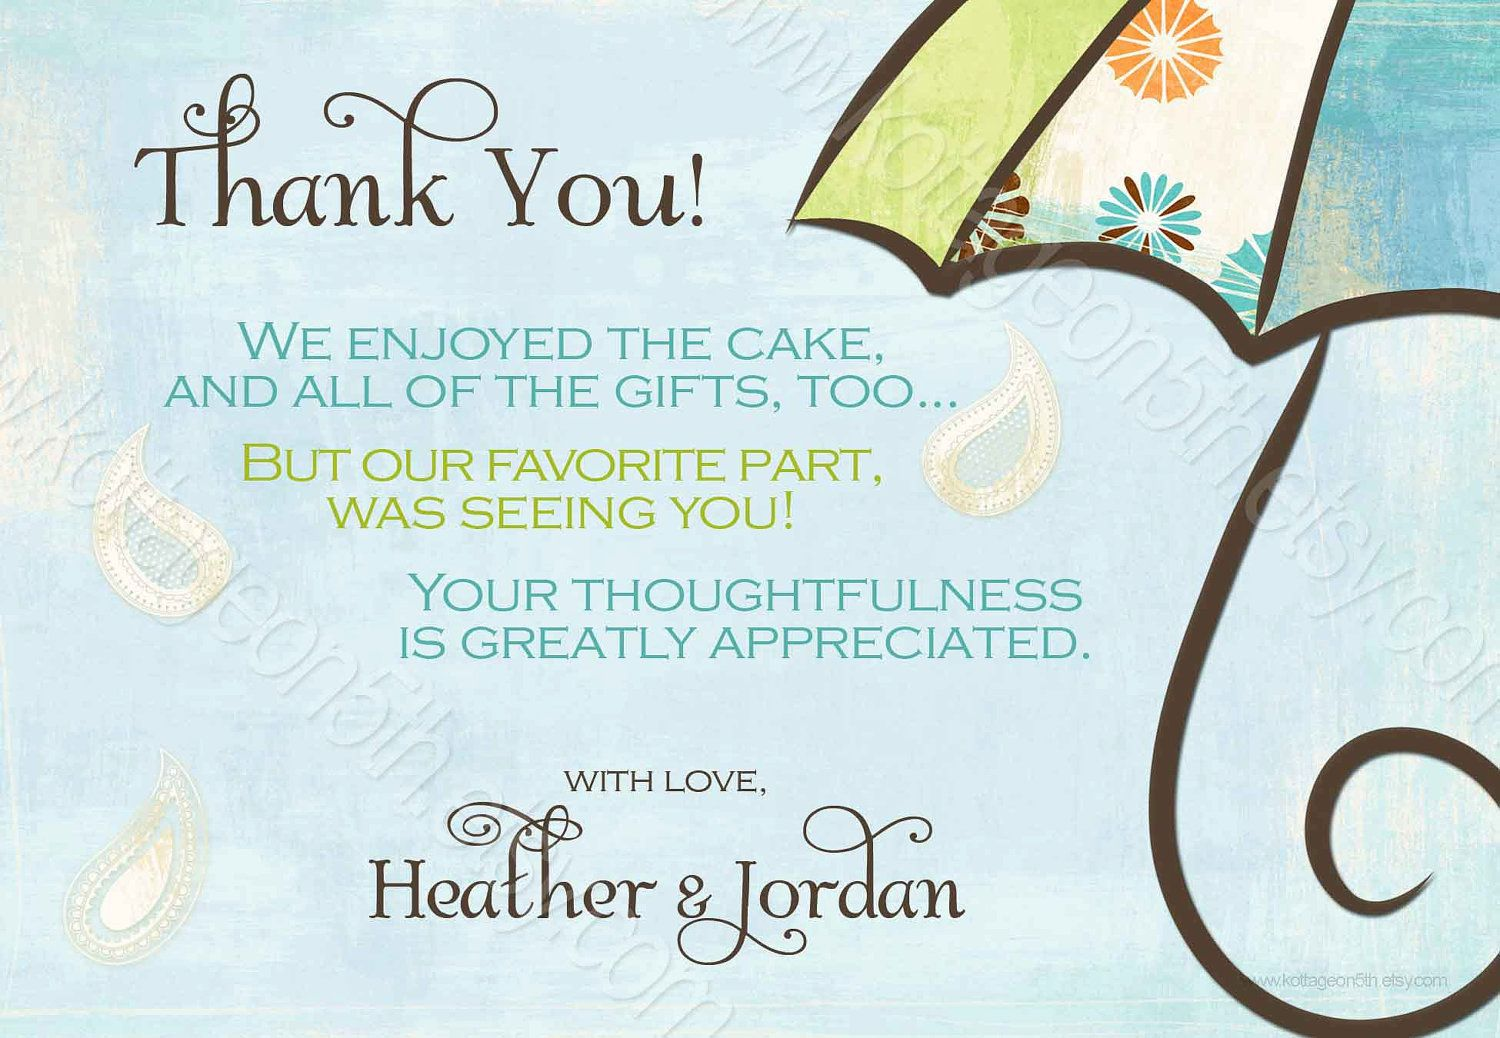 008 Wonderful Thank You Note Template For Baby Shower Gift Concept  Card Letter SampleFull